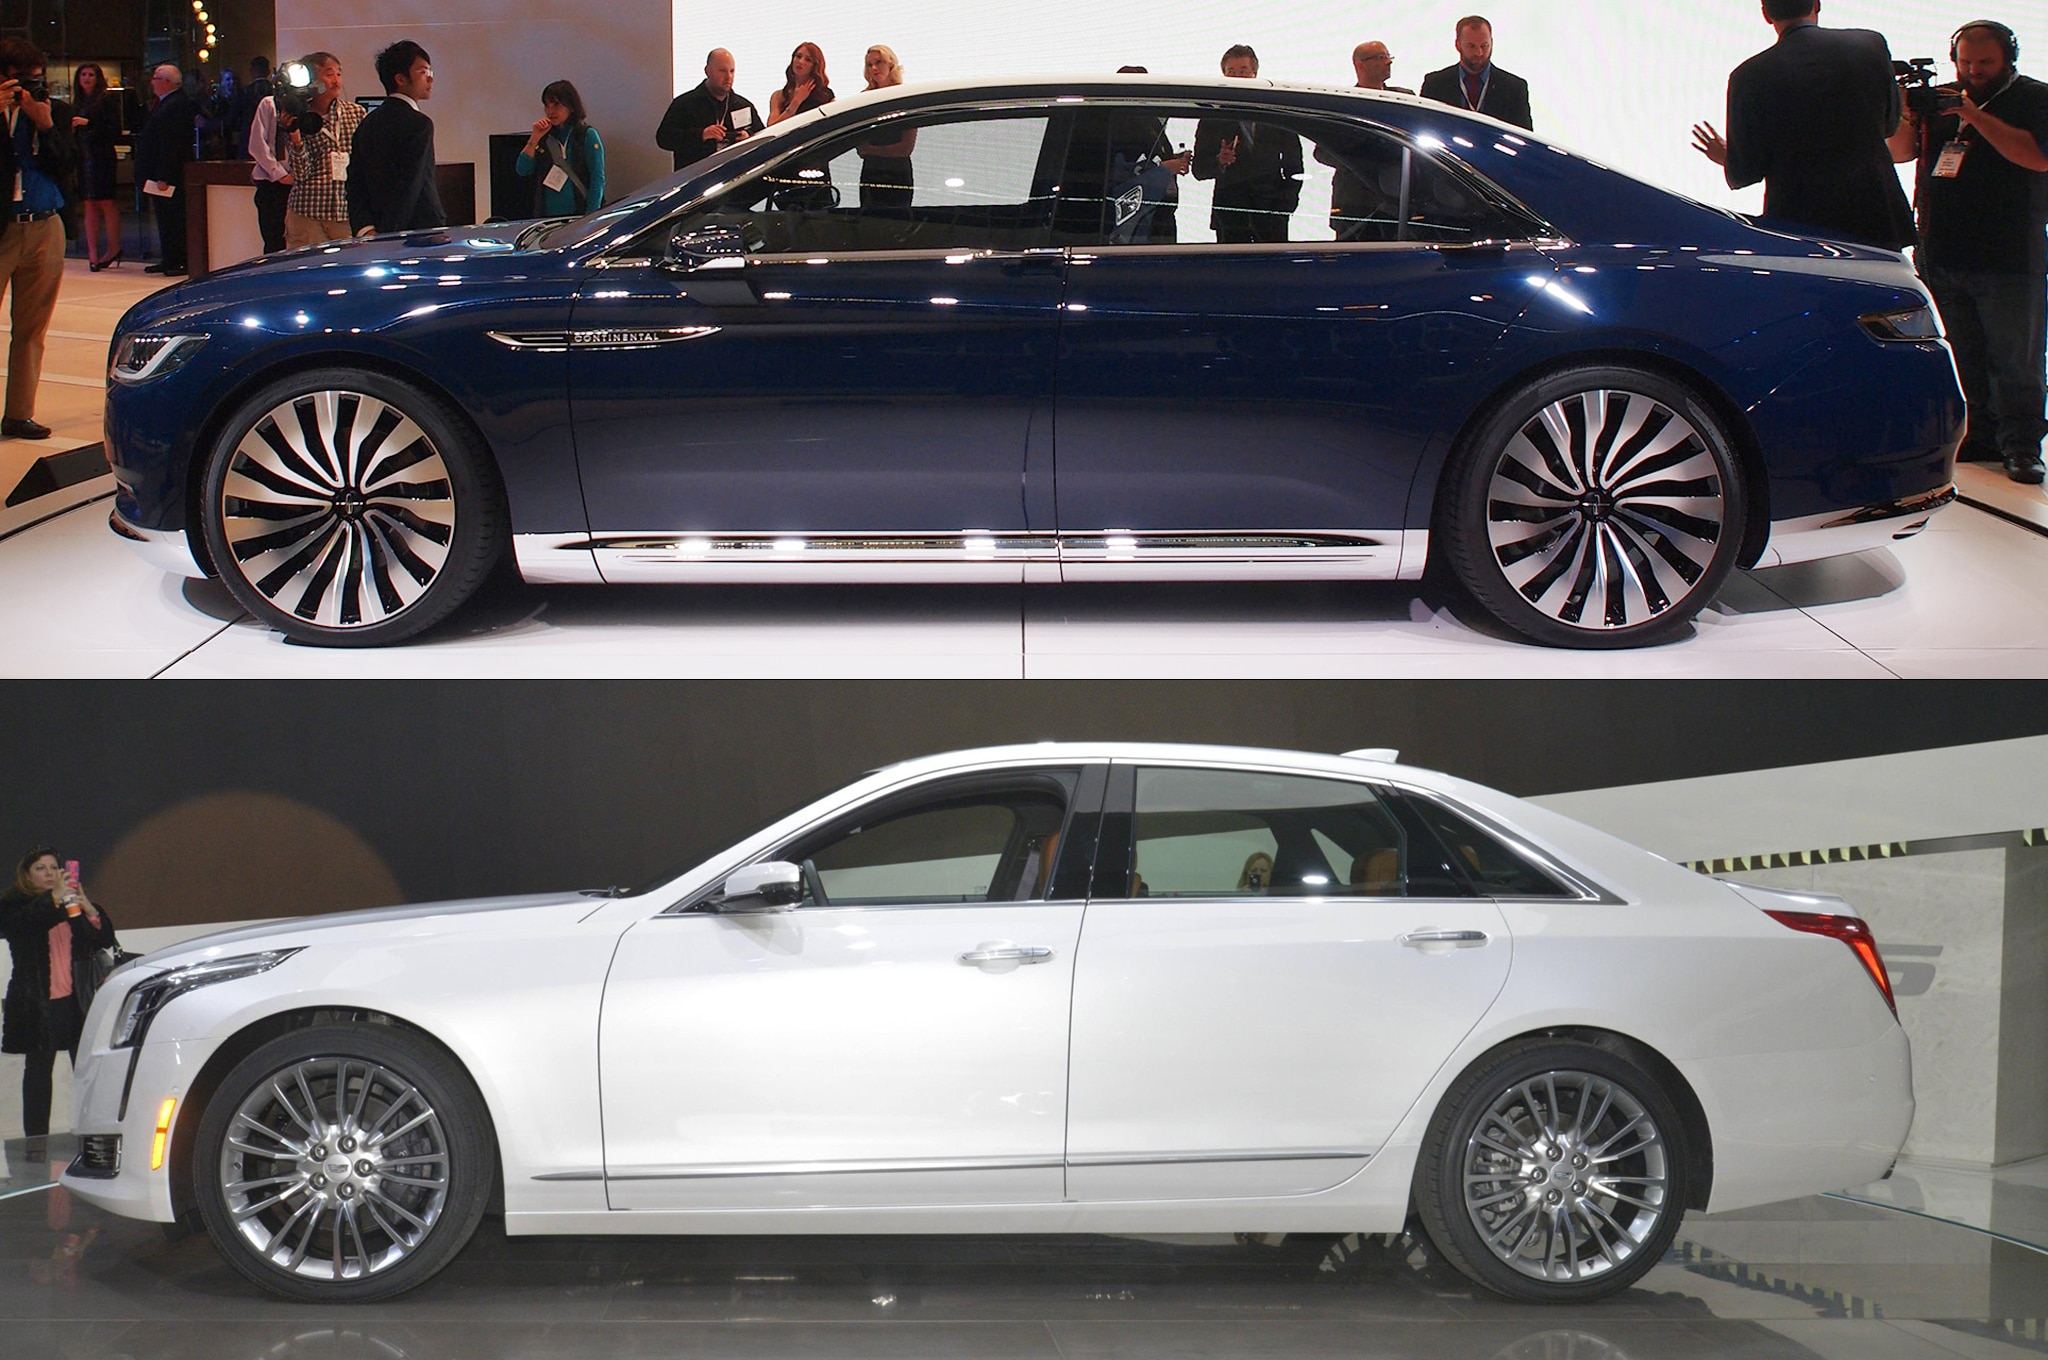 American Luxury Face-Off: Cadillac CT6 vs. Lincoln Continental Concept